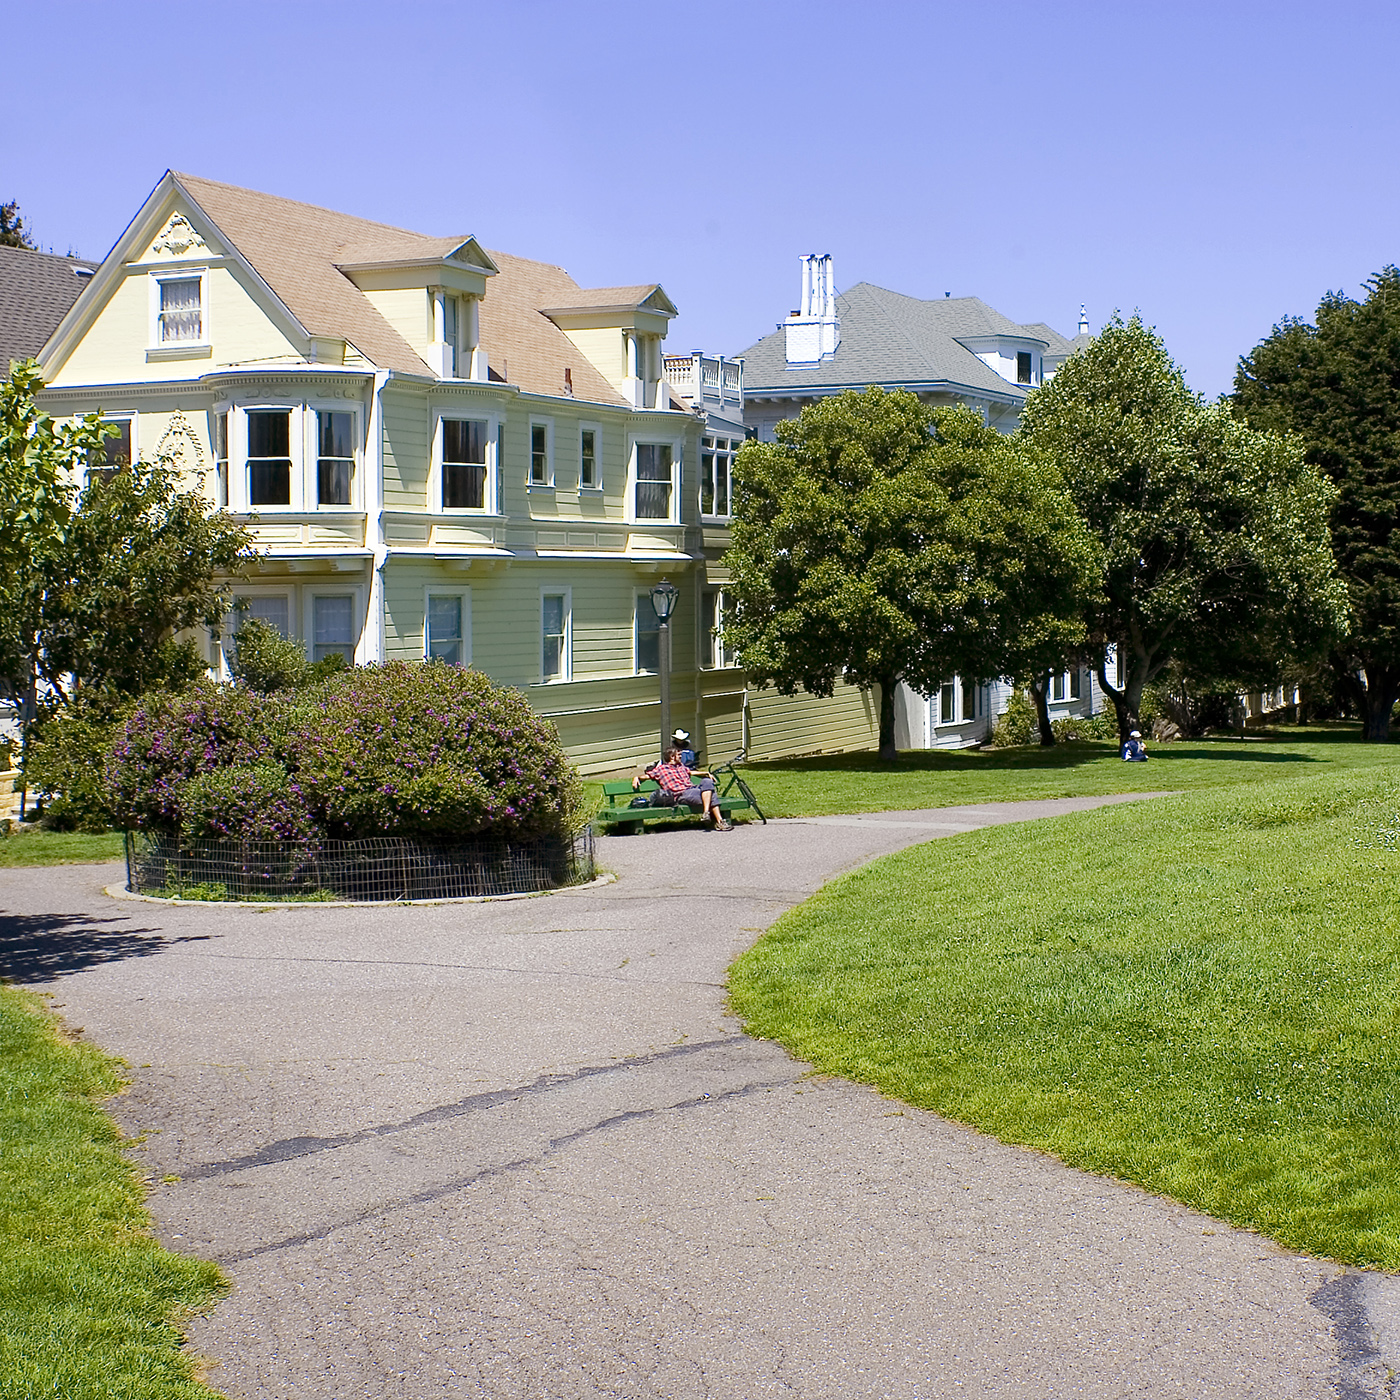 Duboce Triangle Real Estate, Homes & Houses for Sale, San Francisco CA | PARAGON Real Estate Group